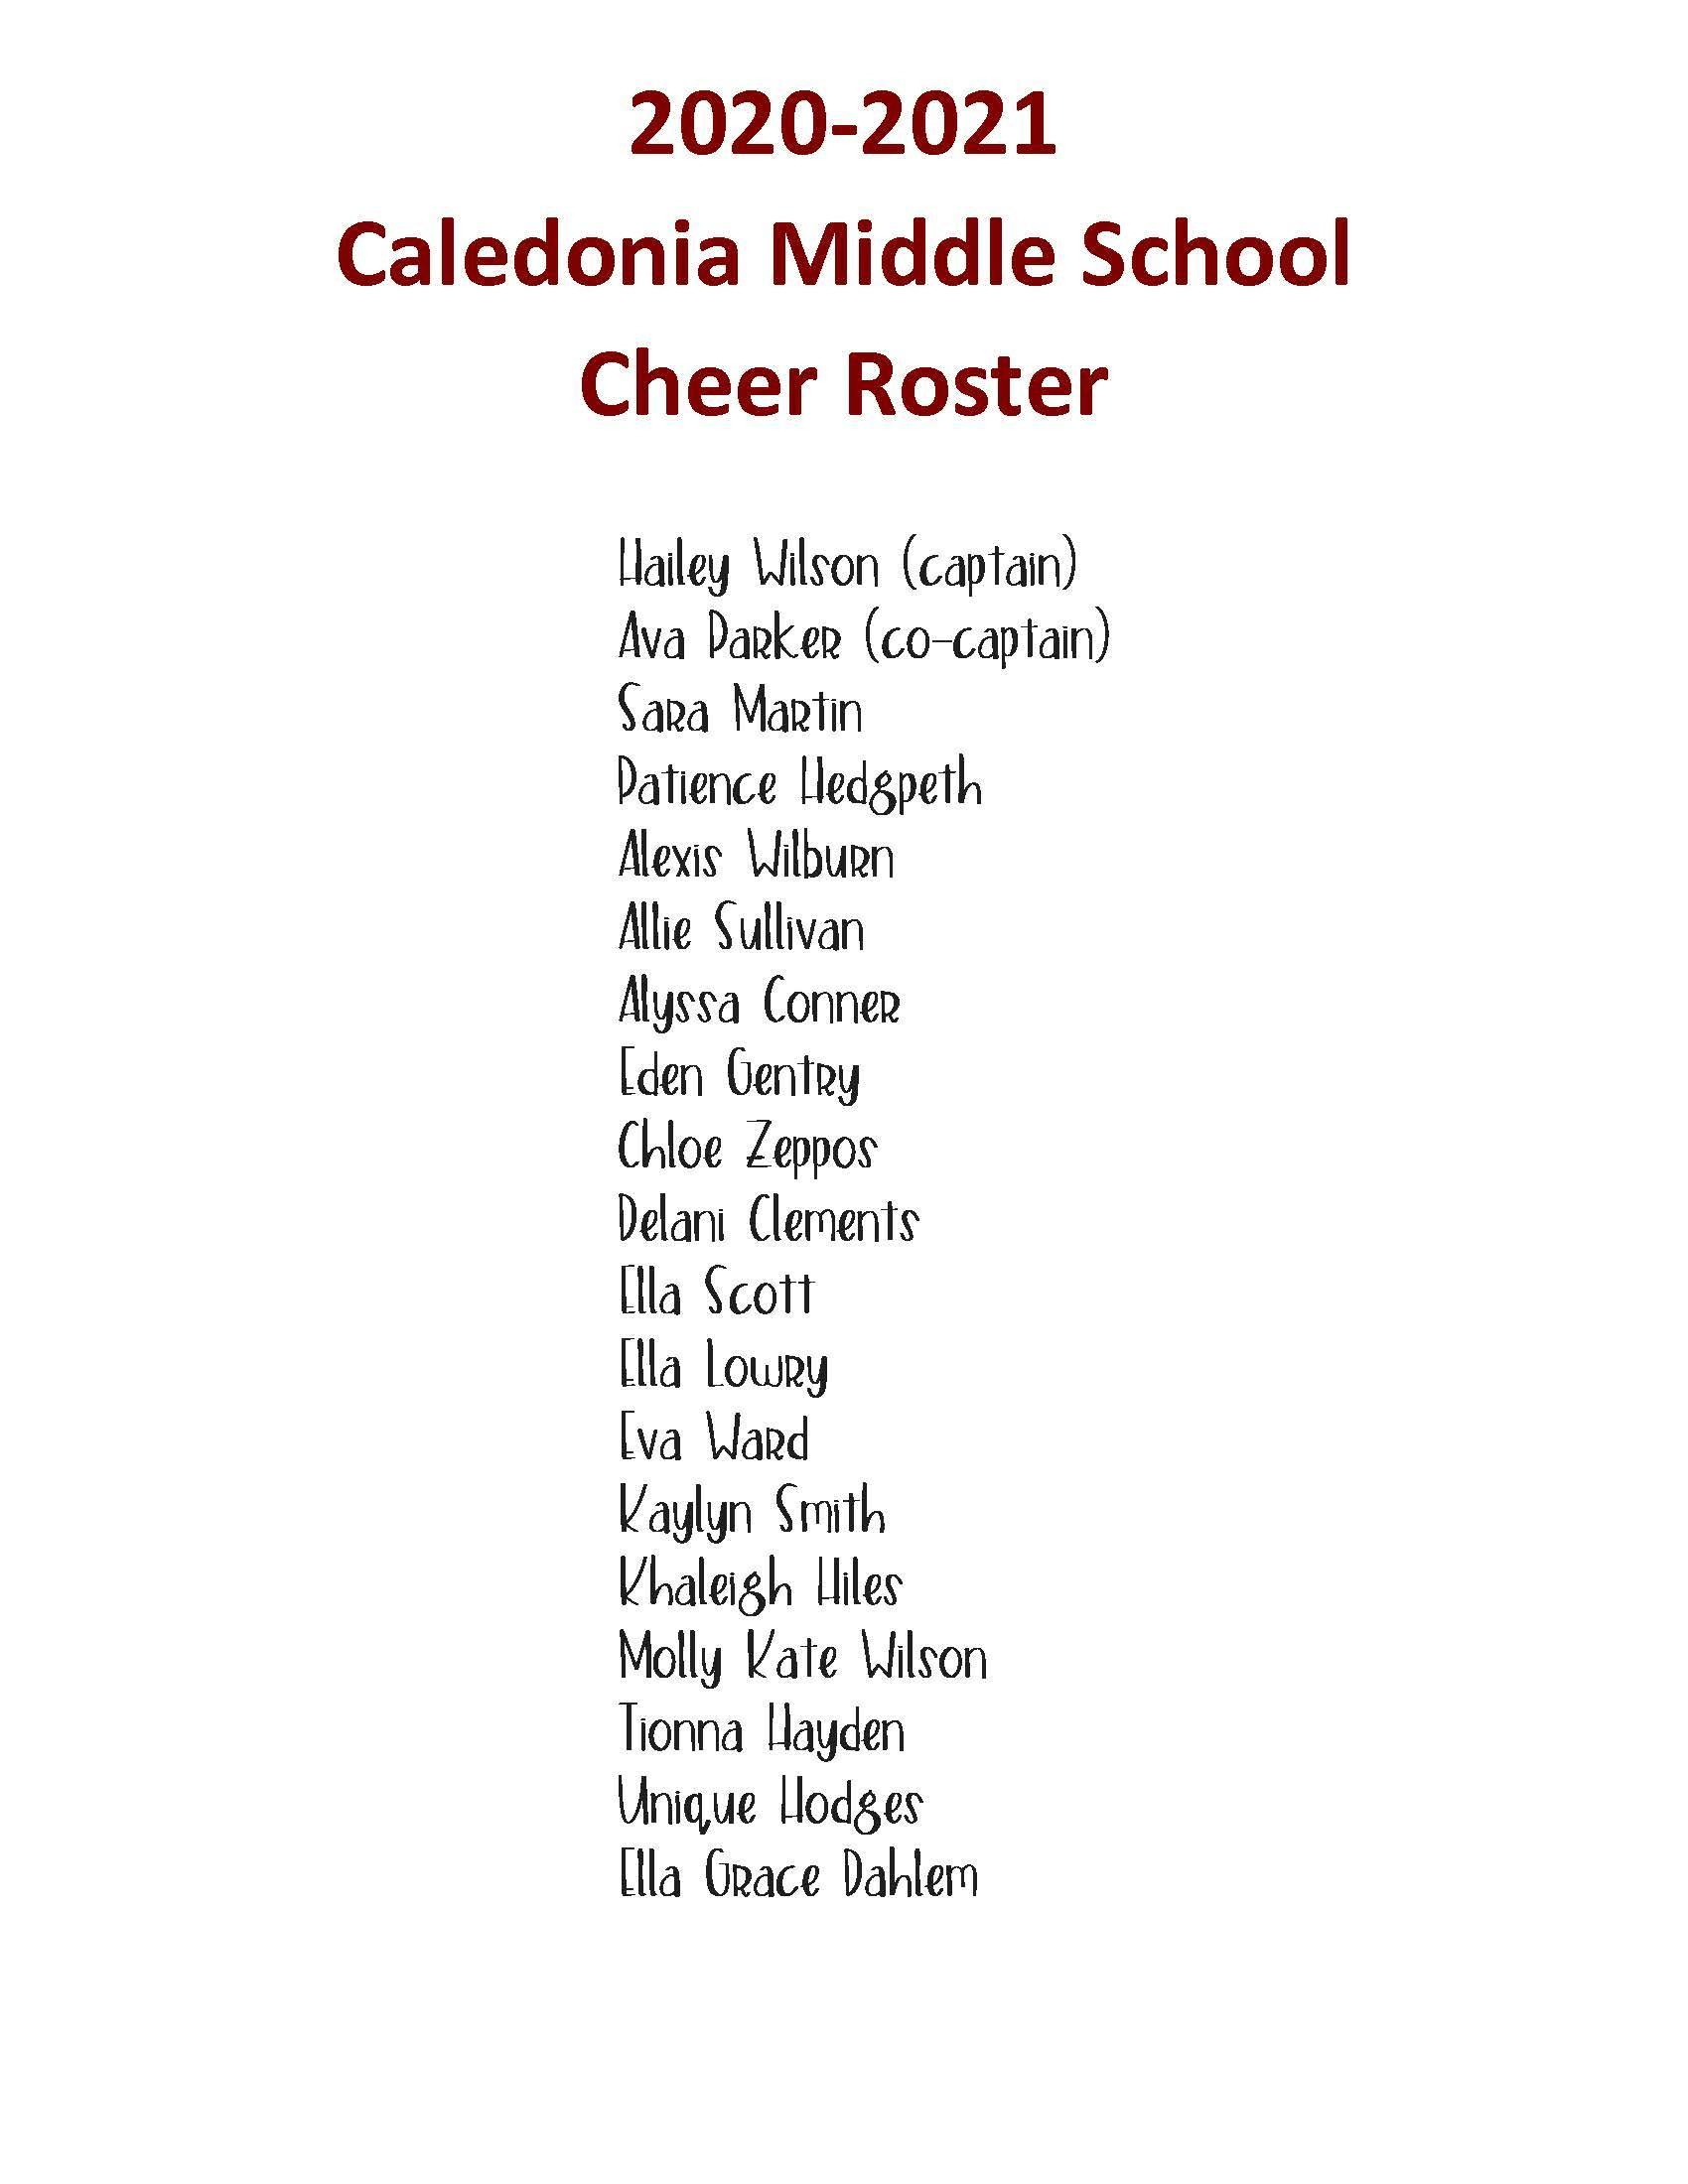 2020-21 Cheer Roster